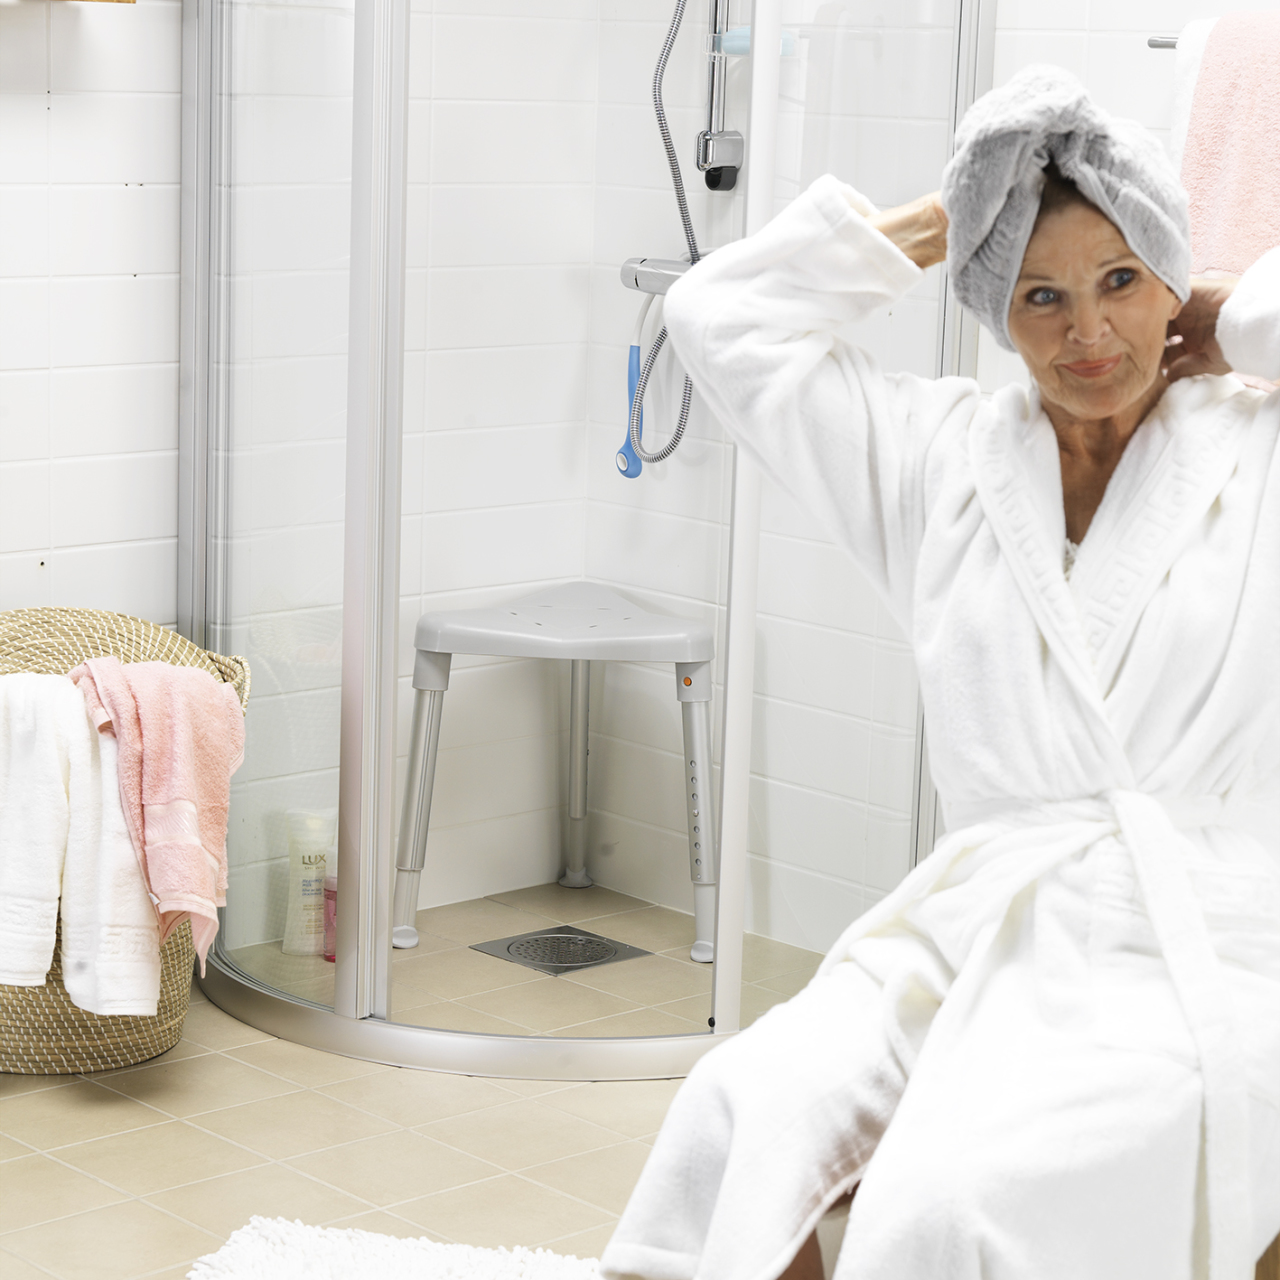 shower chair malaysia that converts to single bed etac edge easy and smart stools